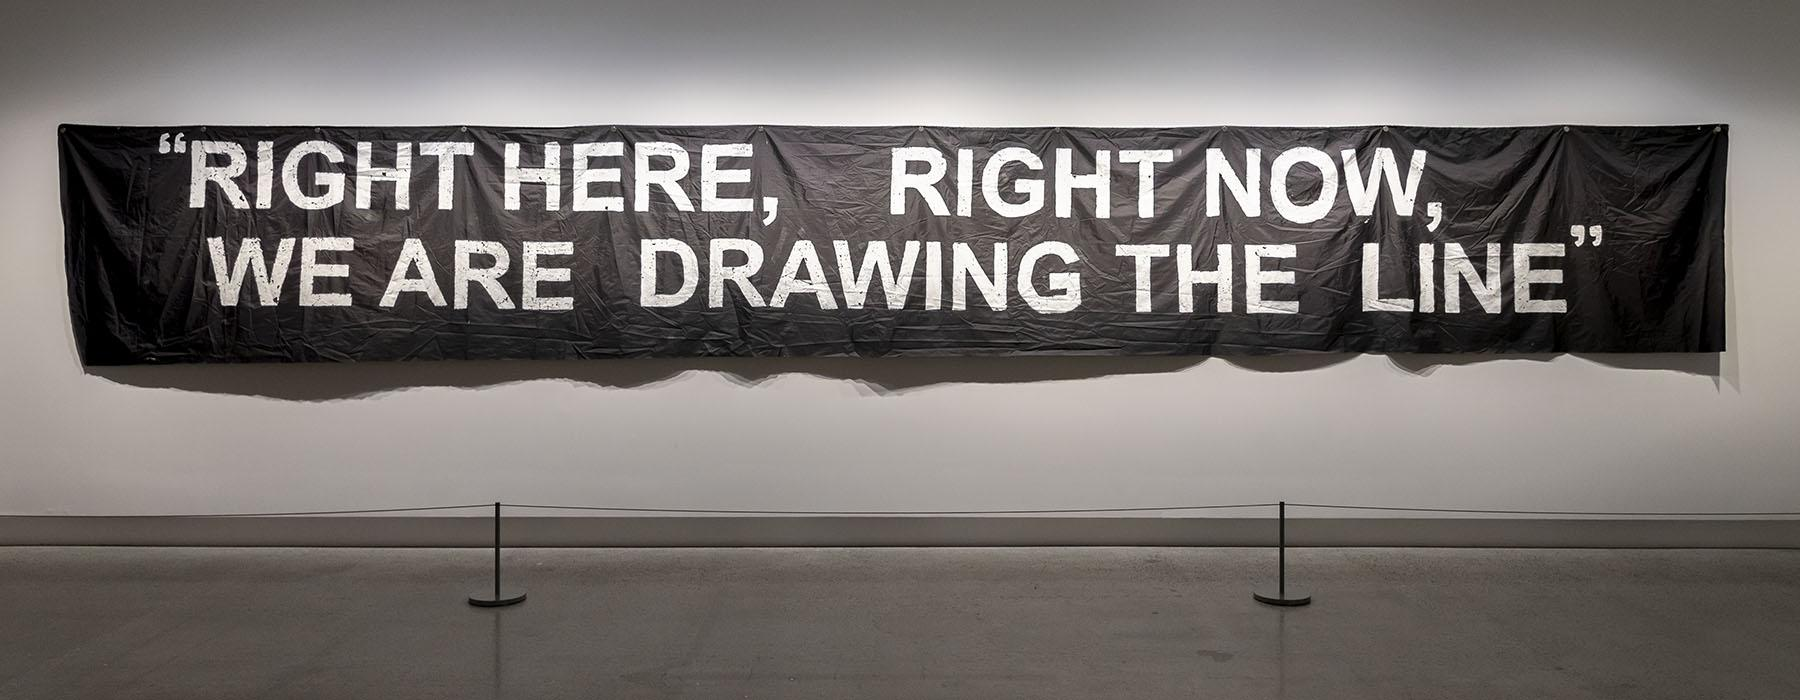 Black banner with the words 'Right here, right now, we are drawing the line' on it, hanging on the gallery wall